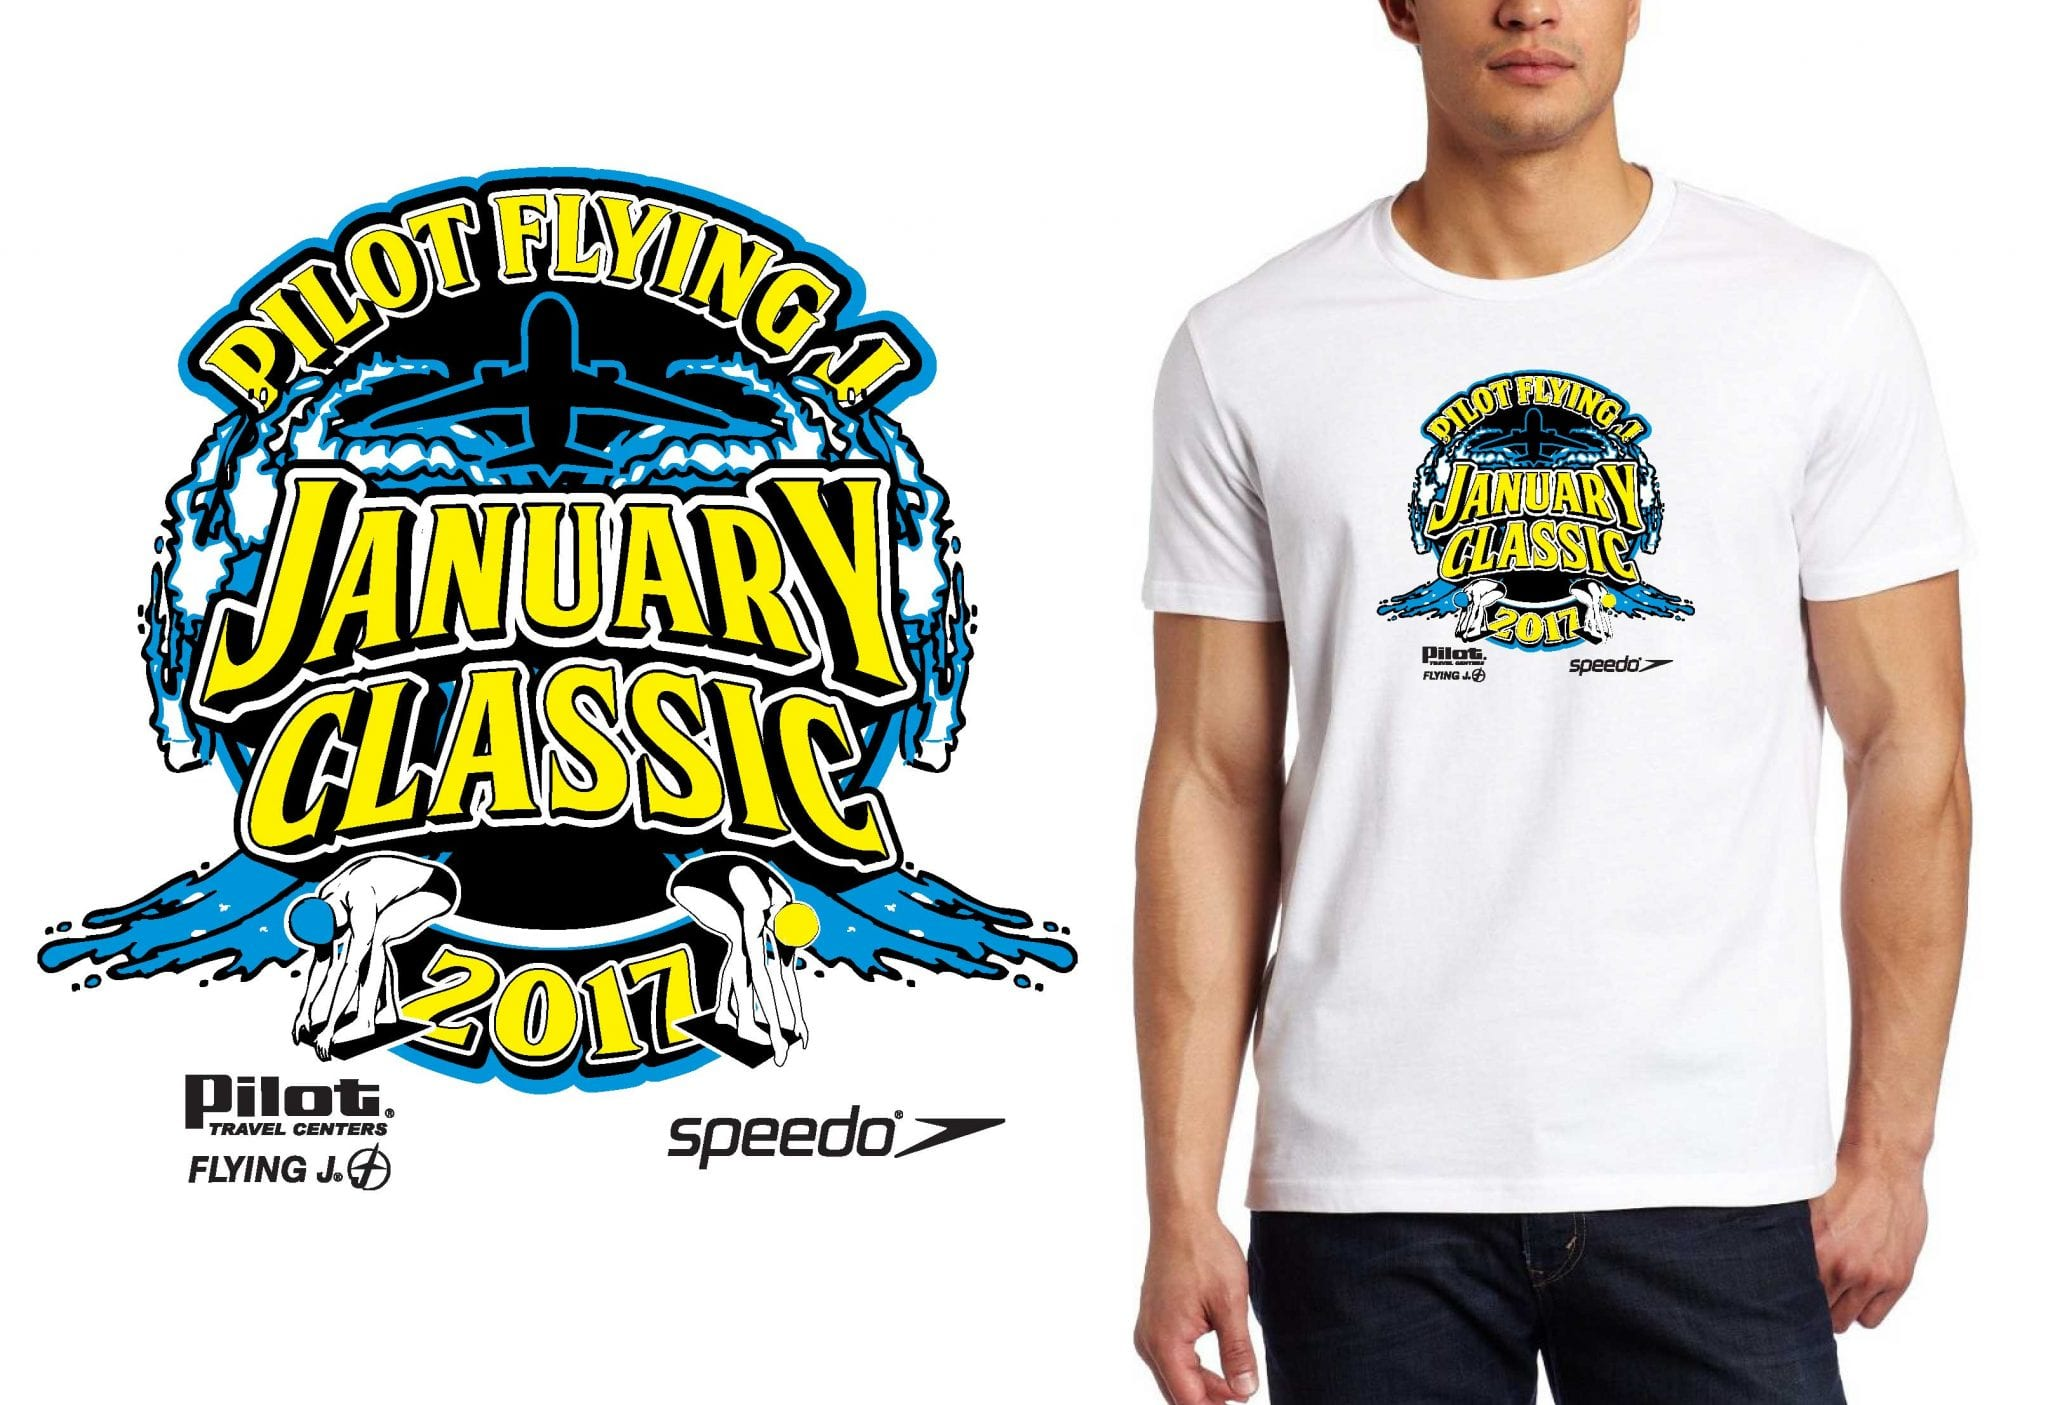 1 13 15 2017 Pilot Flying J January Classic t-shirt vector logo design for swimming urartstudio.com